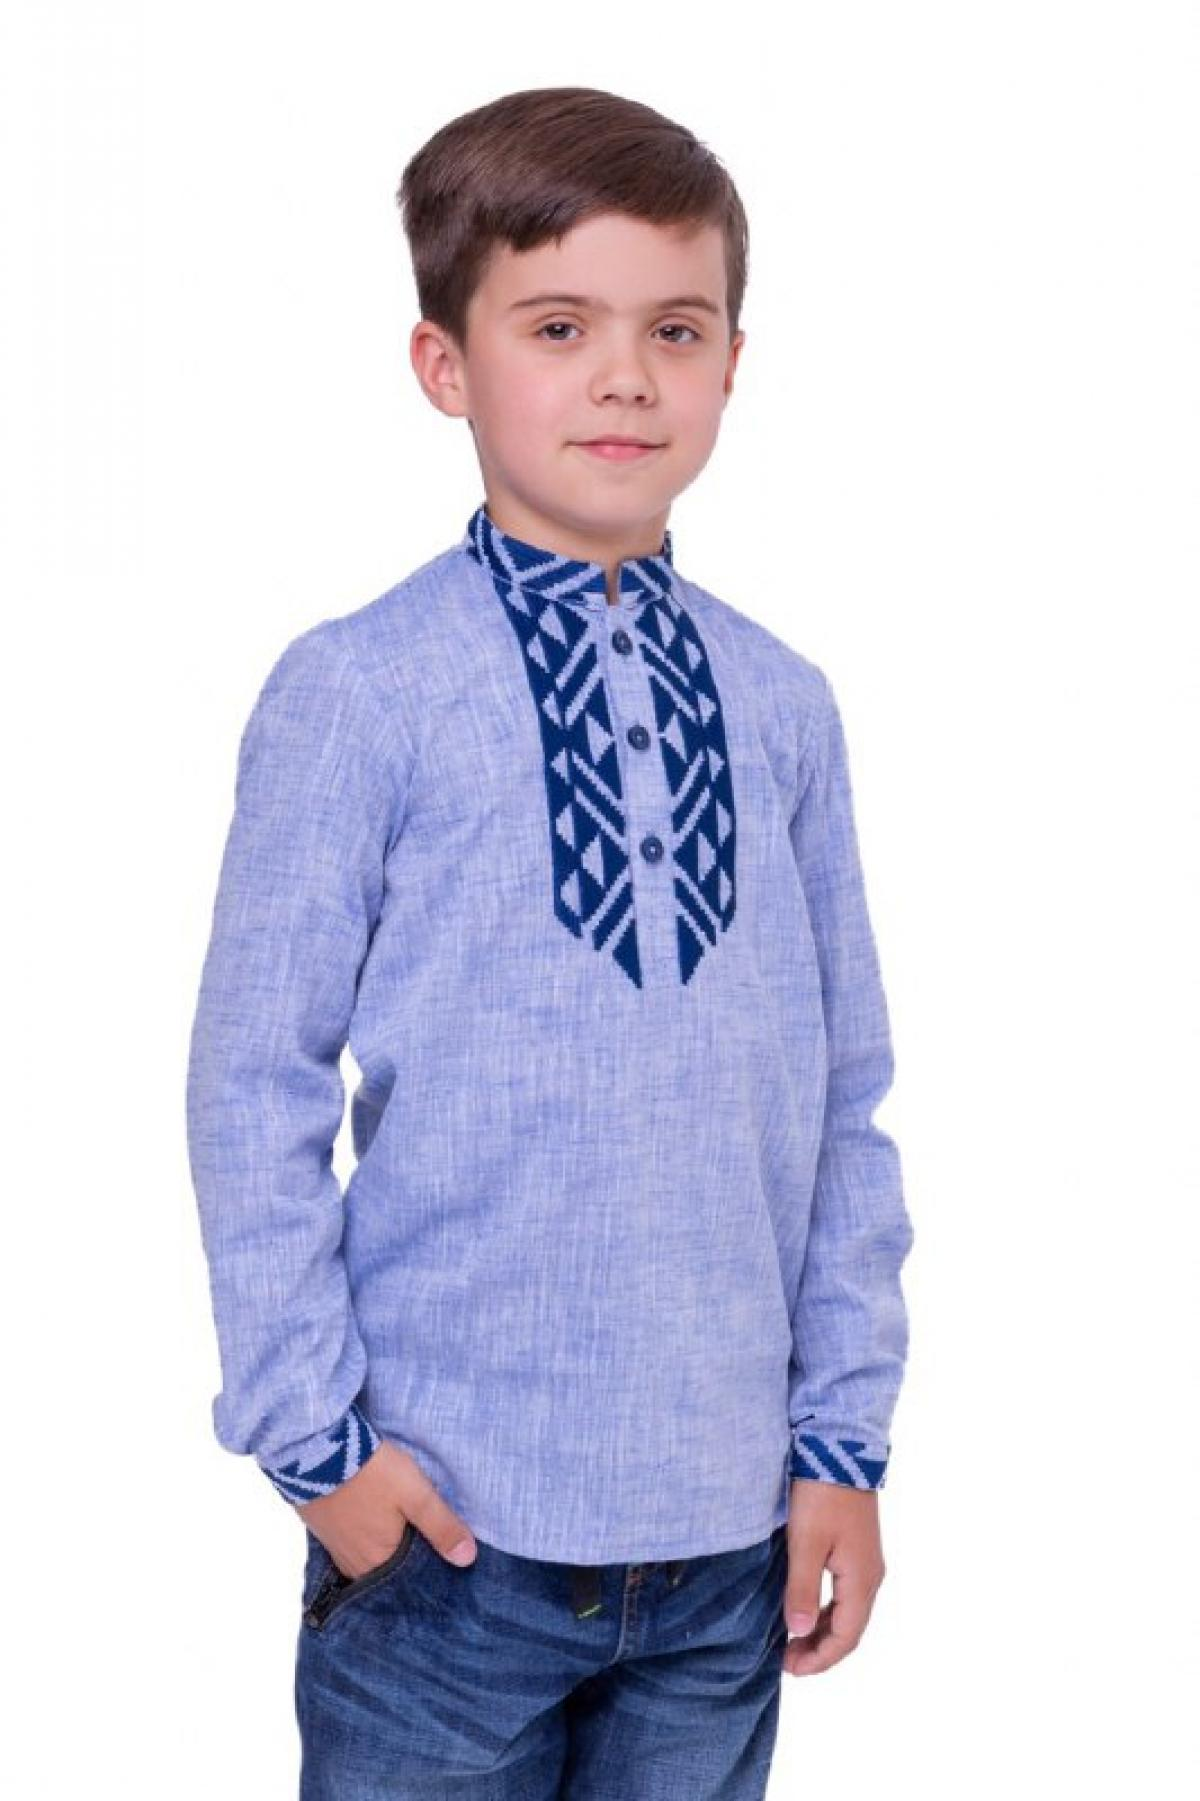 Blue embroidered shirt for a boy with dark blue embroidery